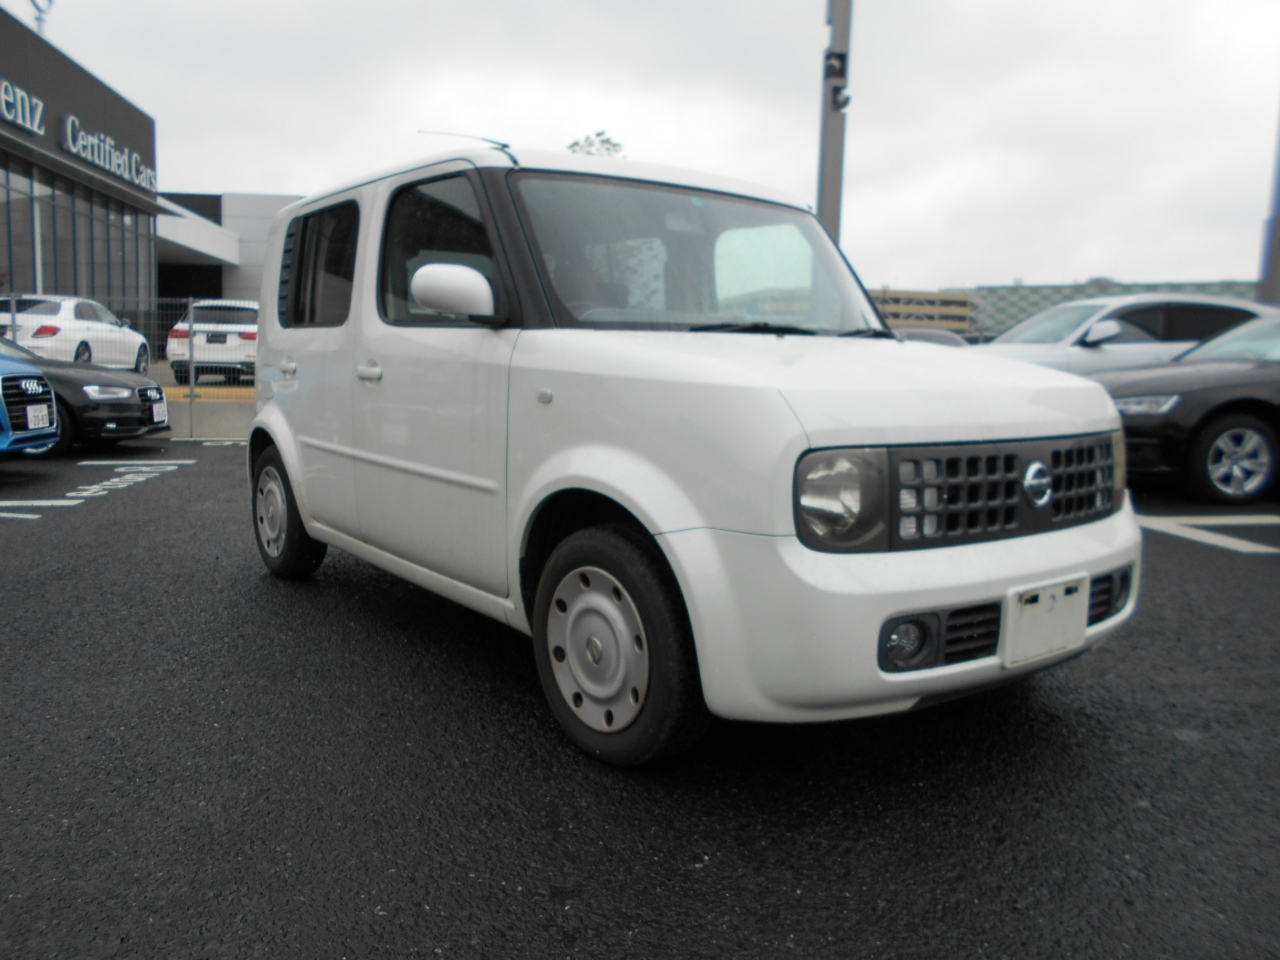 Buy used NISSAN CUBE at Japanese auctions